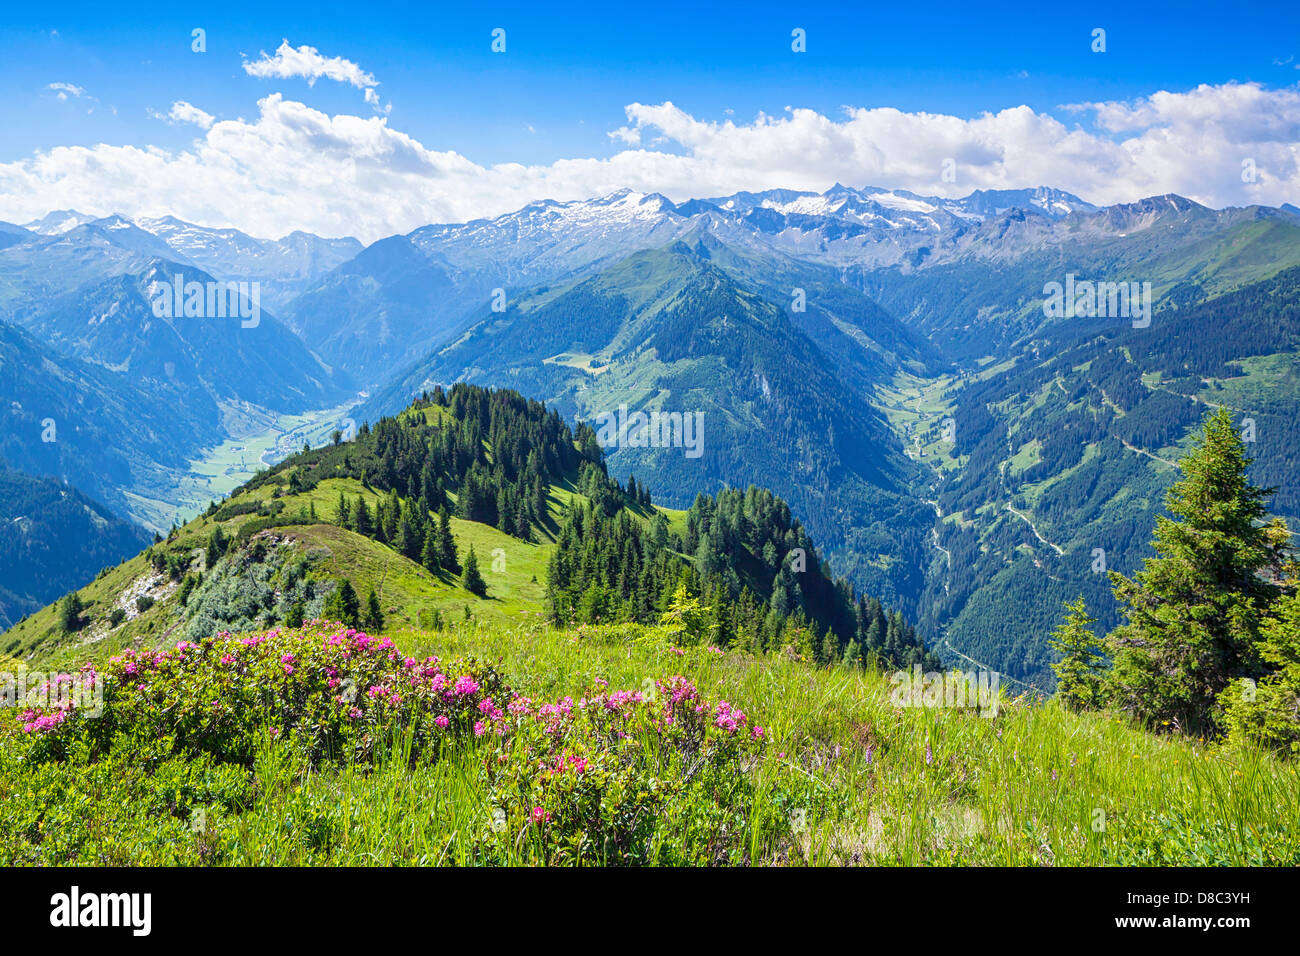 Ap with blooming hairy alpenrose (Rhododendron hirsutum) in Grossarl Valley, Austria - Stock Image